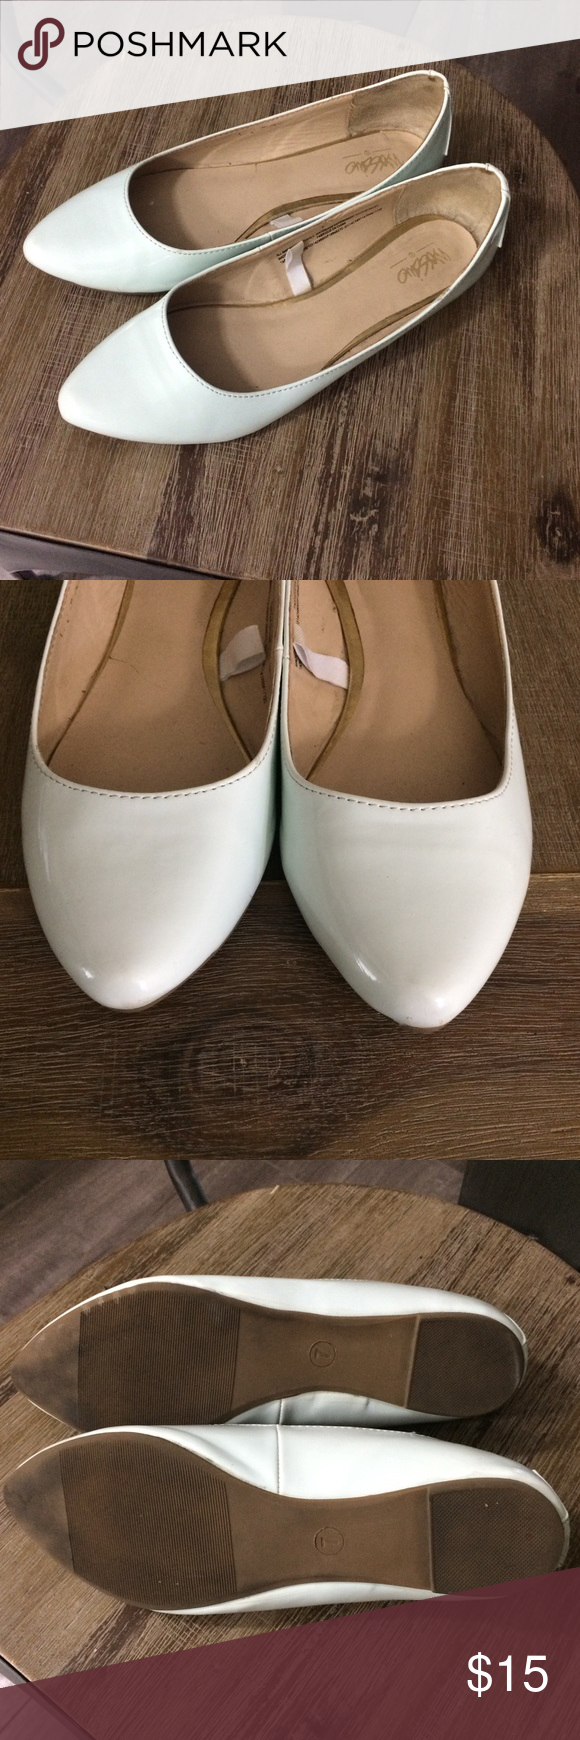 Missimo Mint shiny pointed flats size 7 Good used condition. Some wear. Mossimo Supply Co. Shoes Flats & Loafers